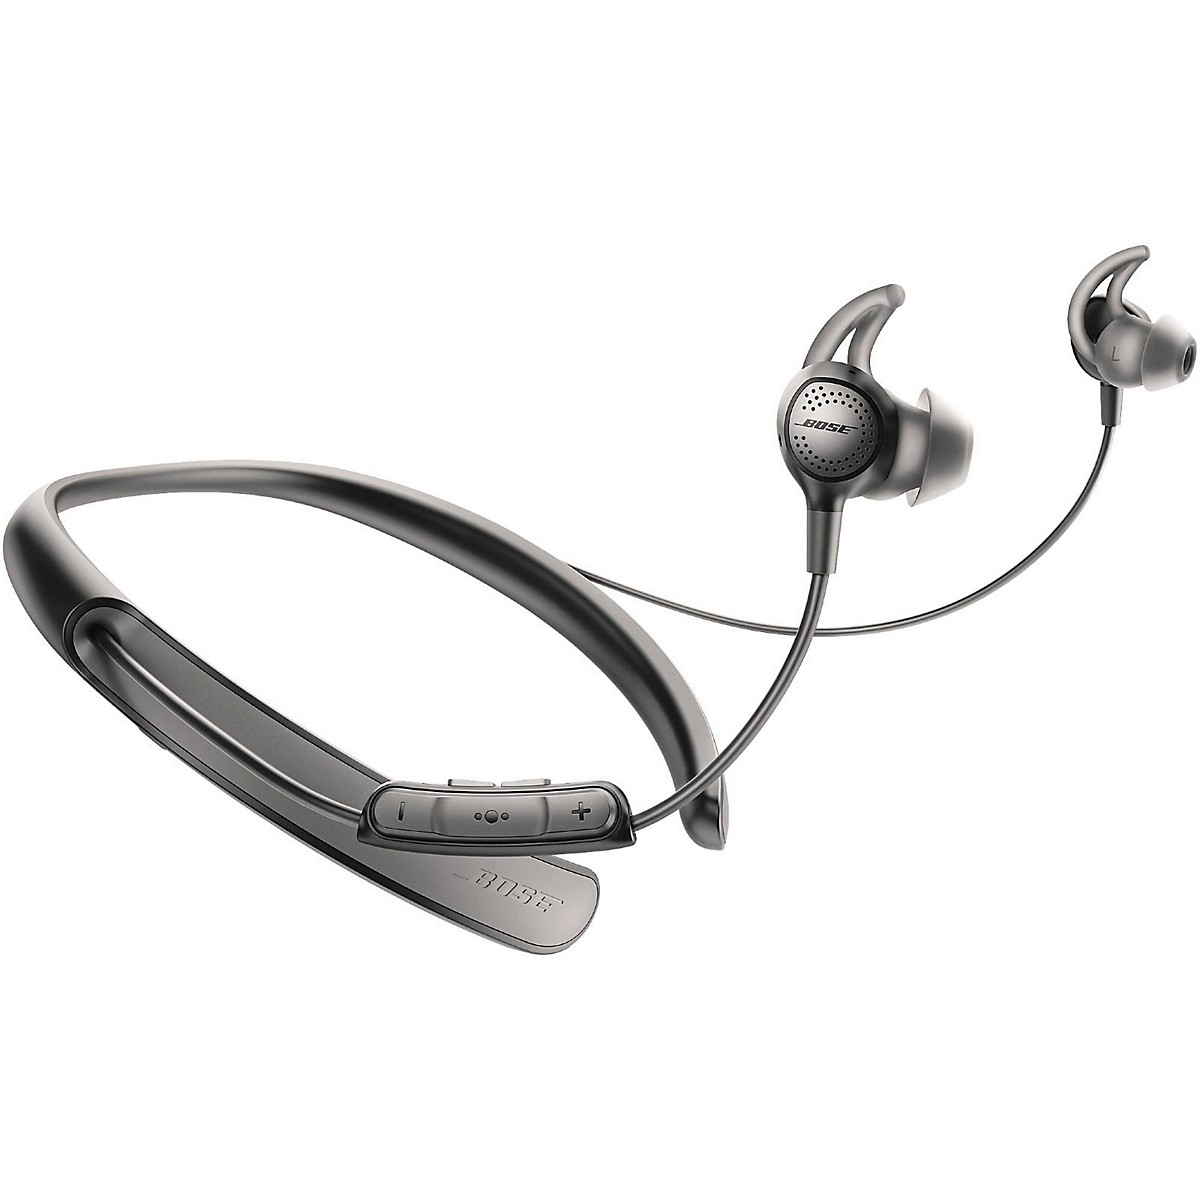 Bose QuietControl 30 Bluetooth Wireless Noise-cancelling Headphones